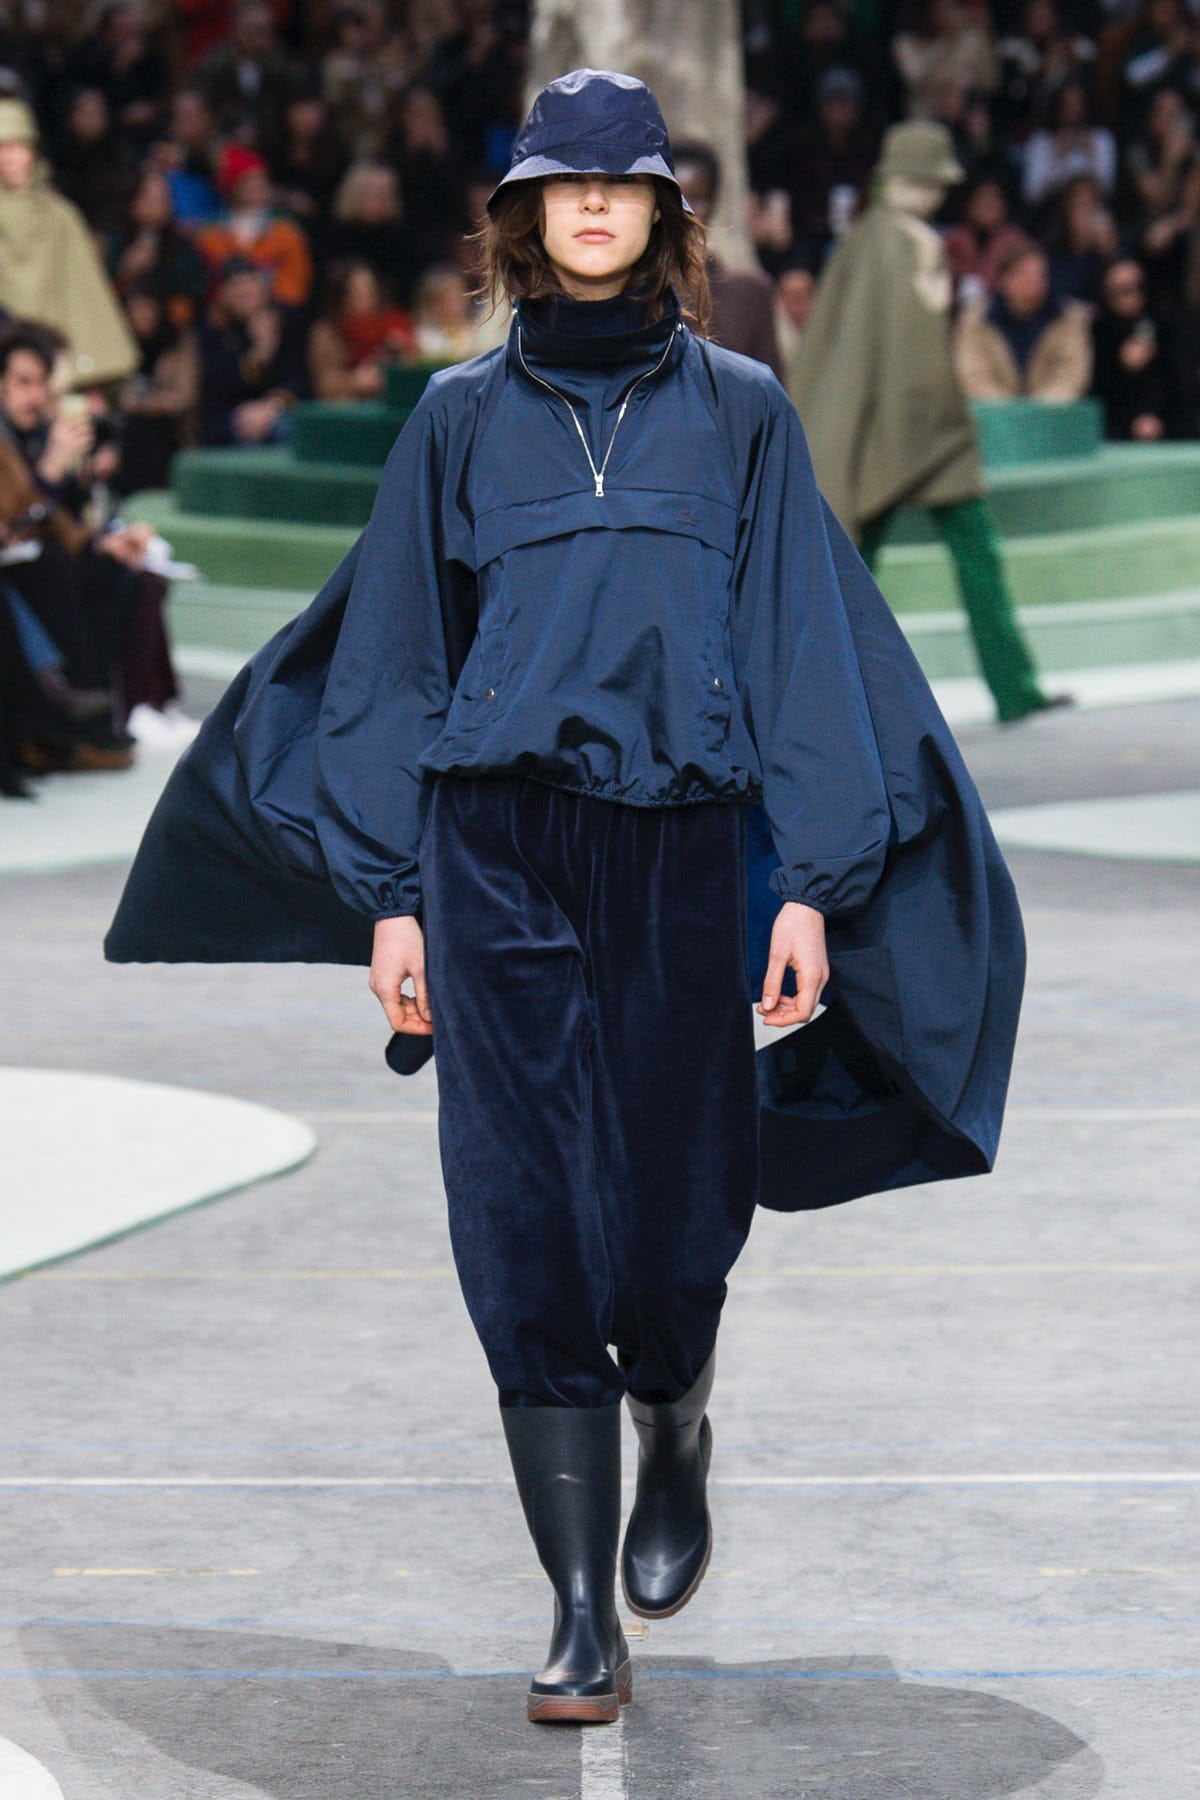 An Upwards Arc at Lacoste